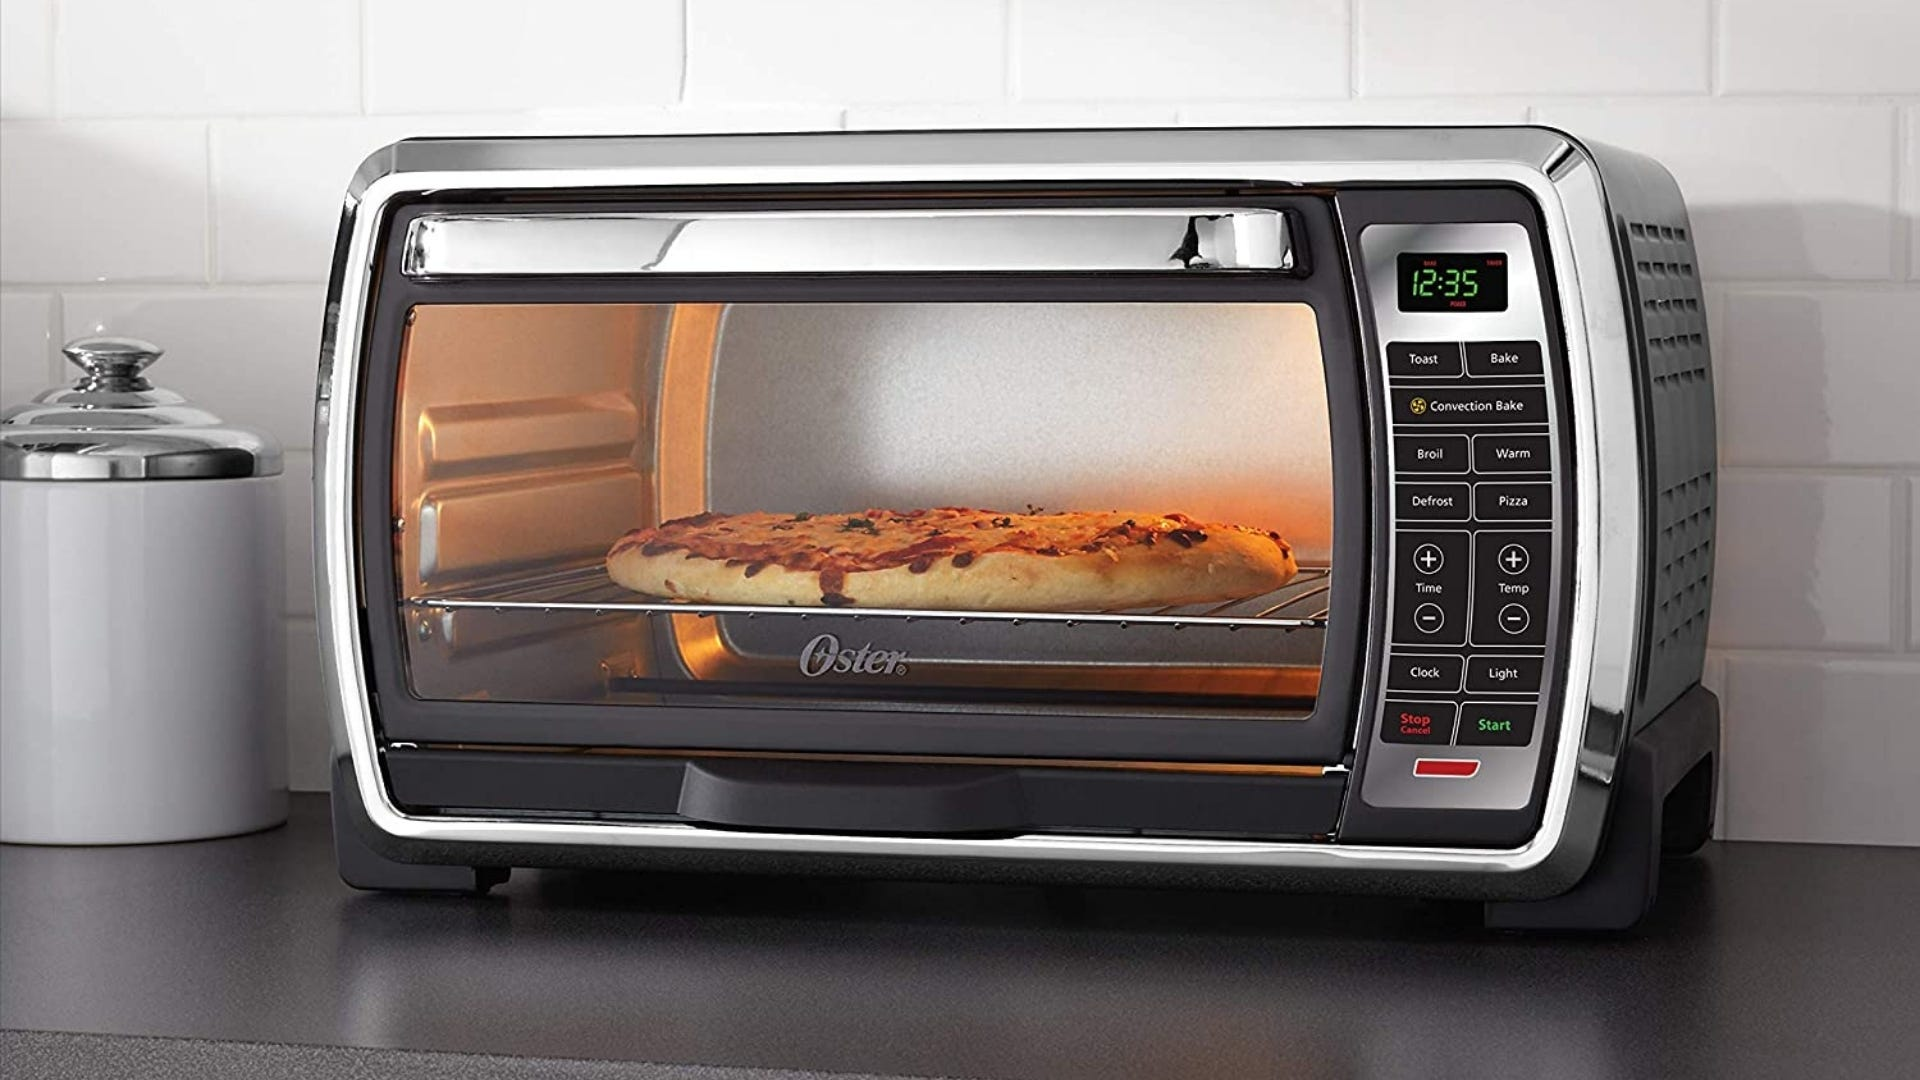 Toaster oven with pizza inside